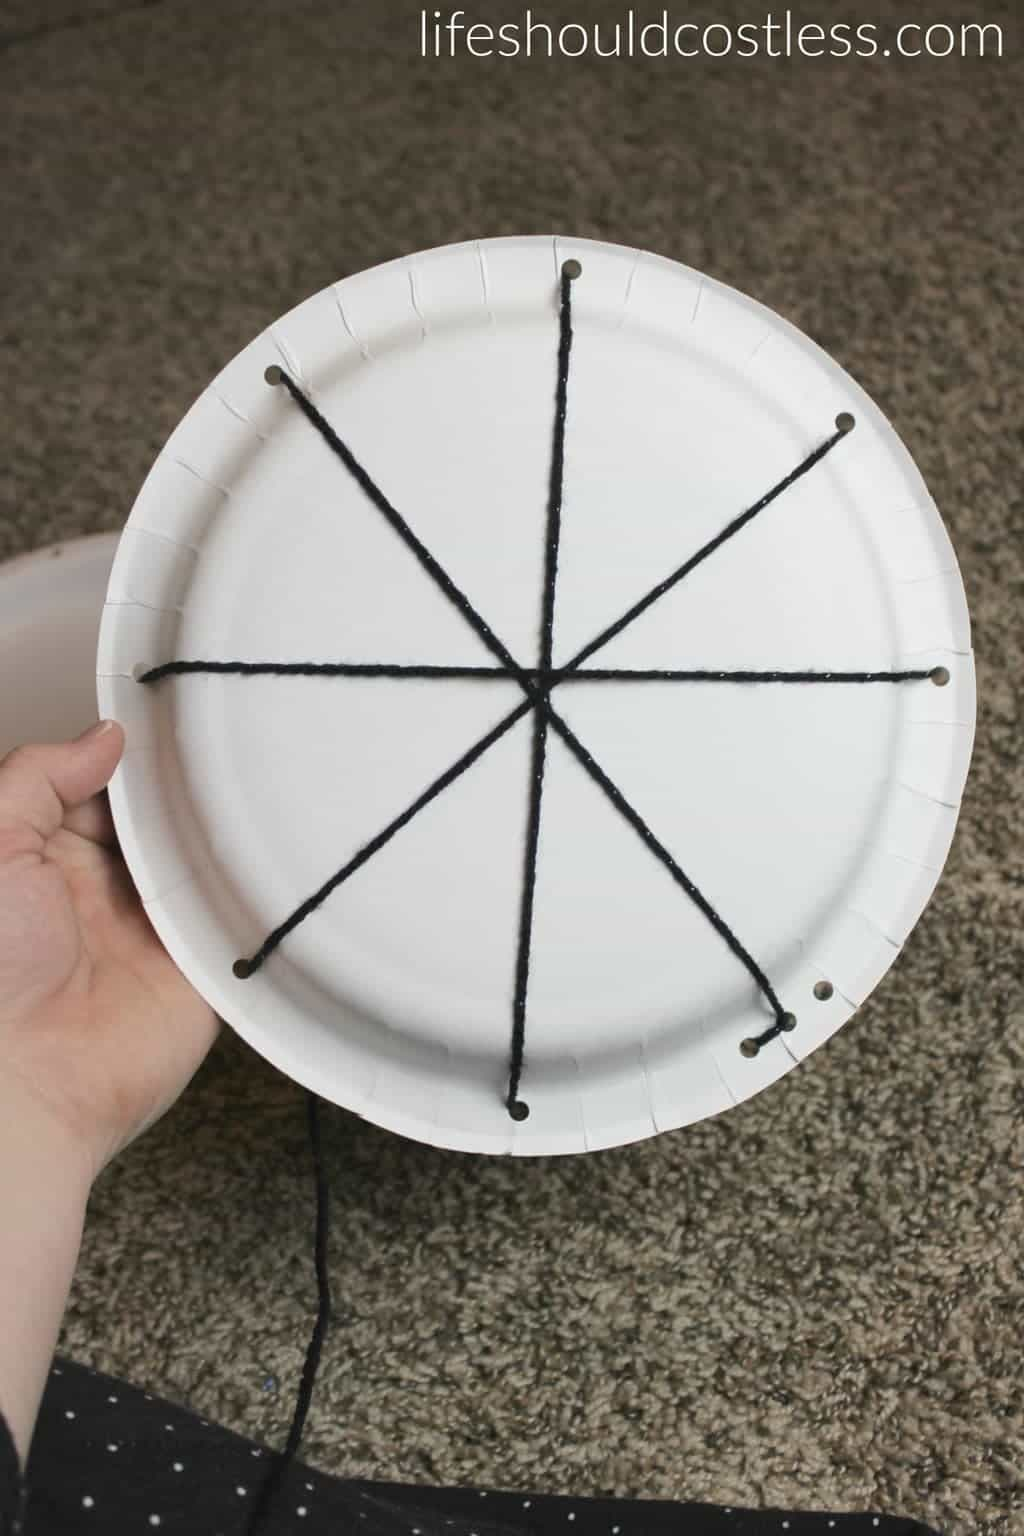 Halloween Spider Web Treat Plates. See this and many more popular seasonal pins at lifeshouldcostless.com.